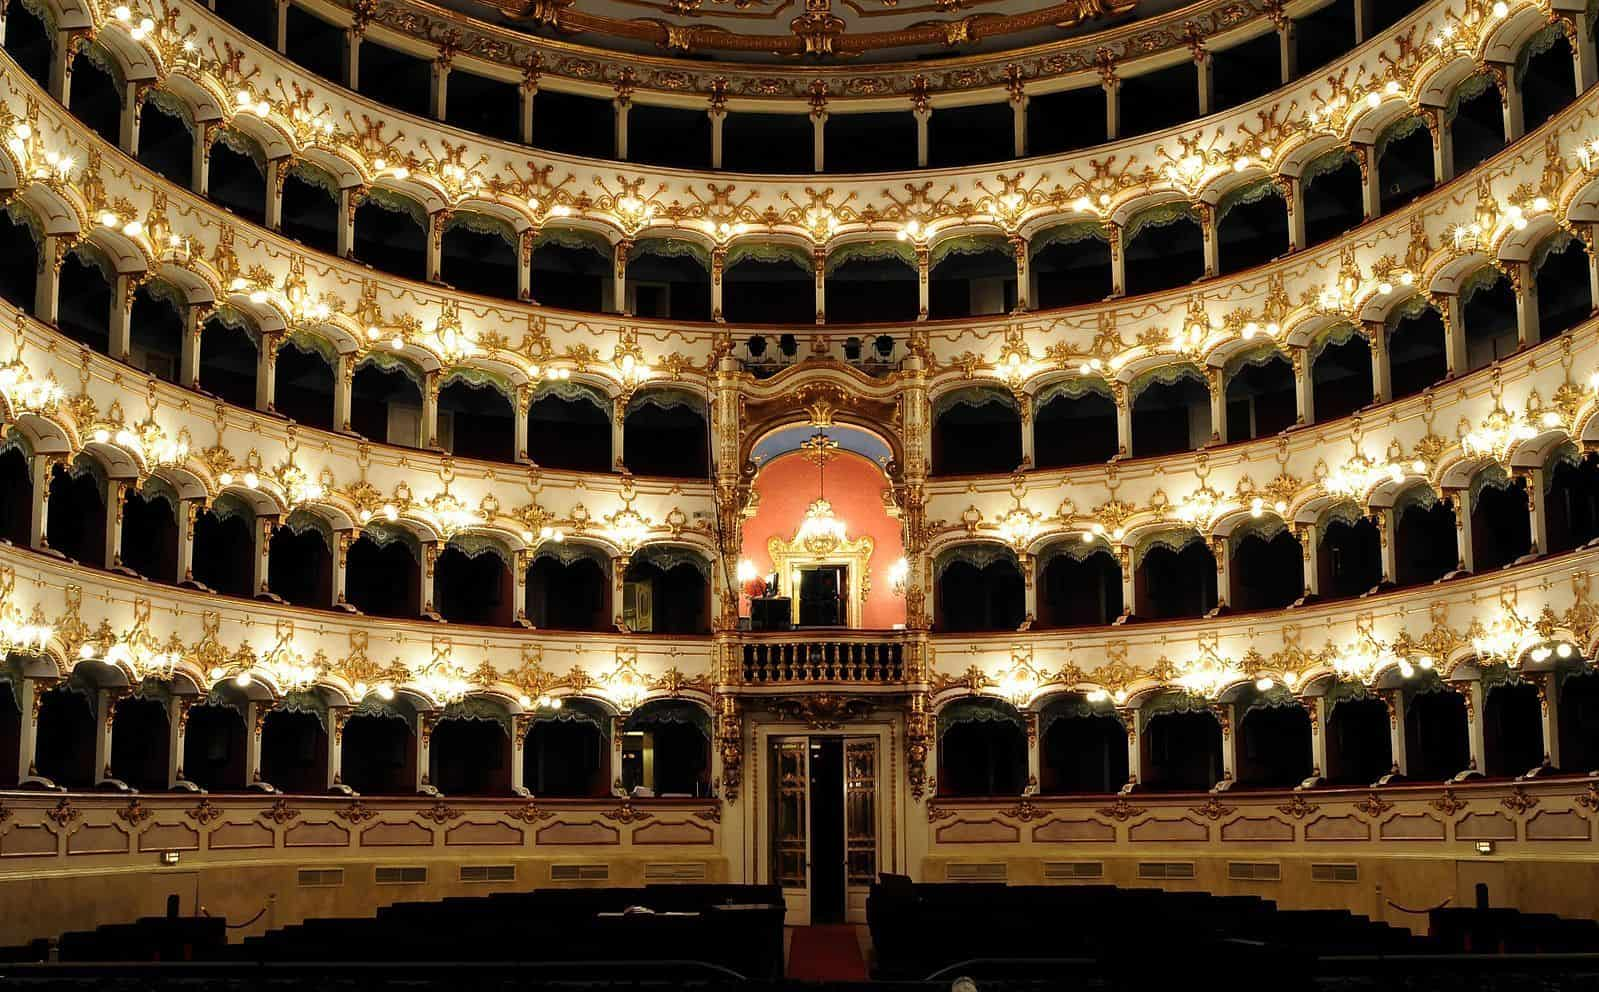 Theatre - Must see places in Piacenza Italy